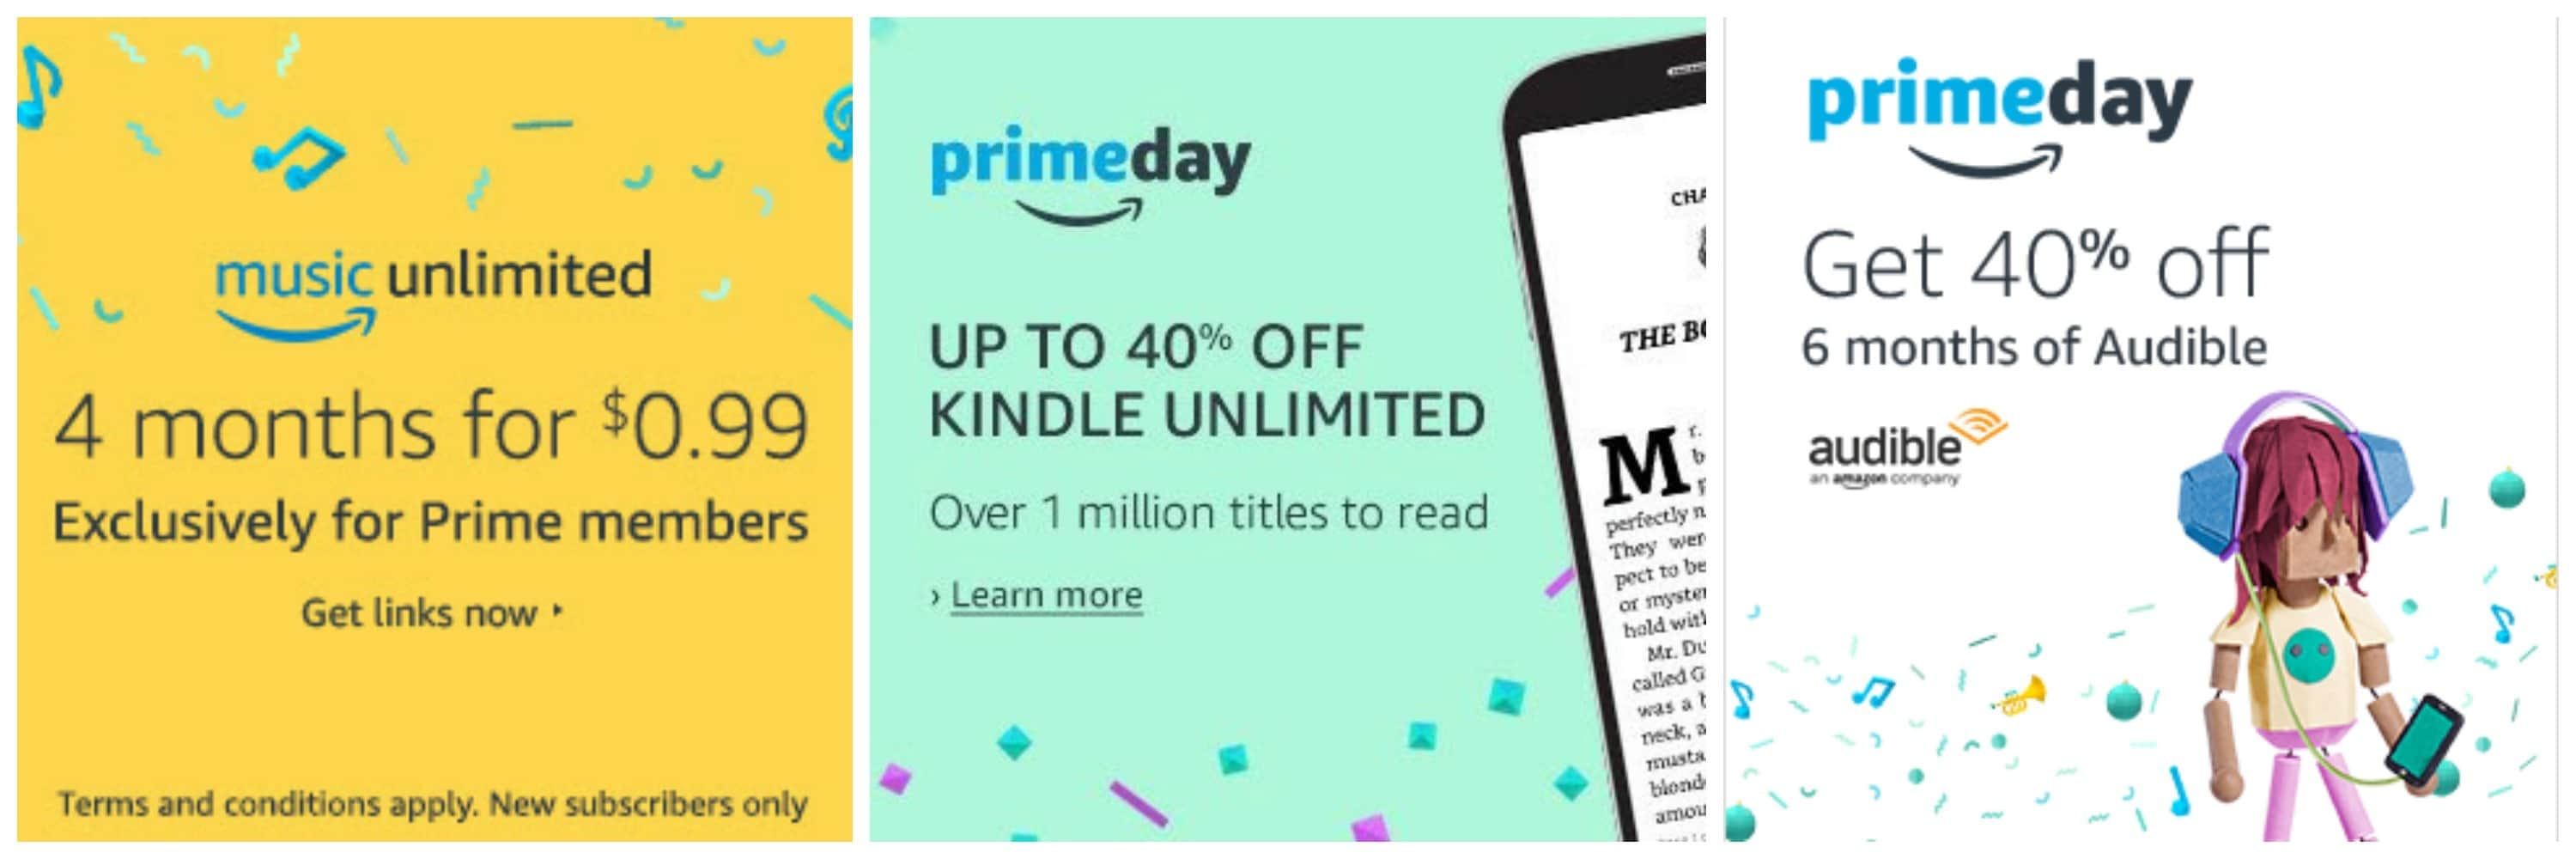 Are you ready for Amazon #PrimeDay2017?